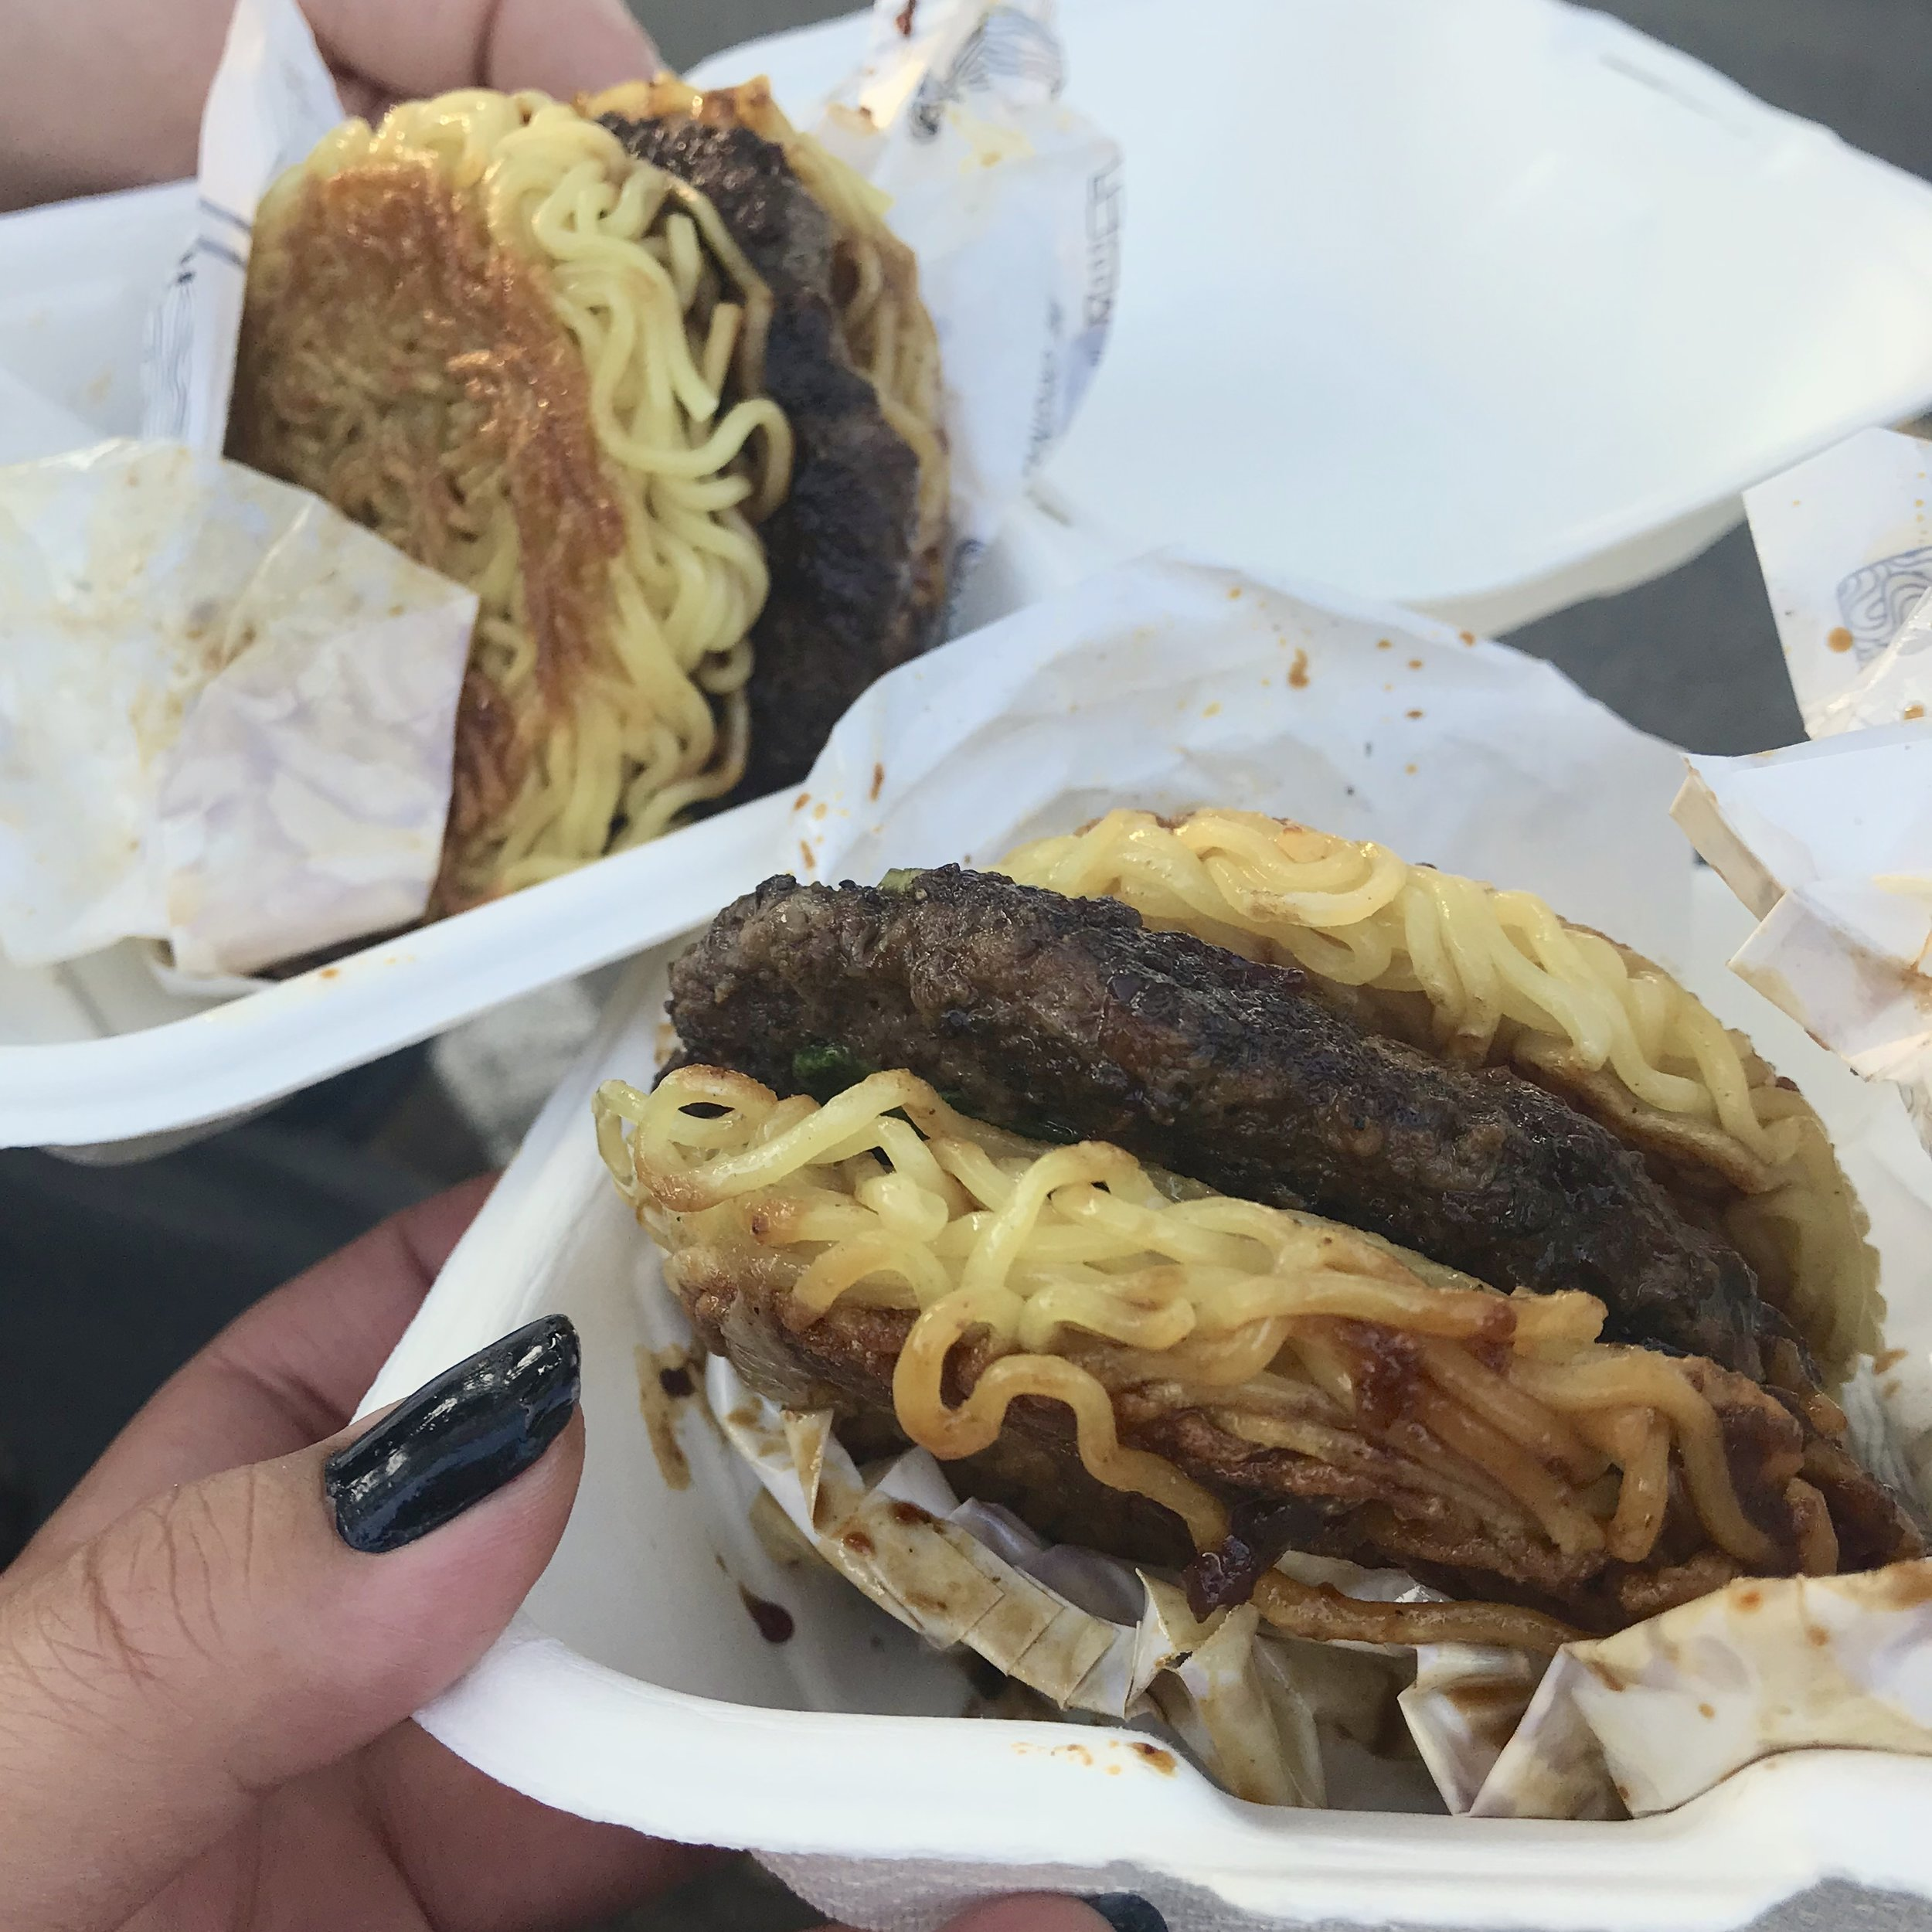 Two Original Ramen Burgers from Ramen Shack ready for their glamour shots